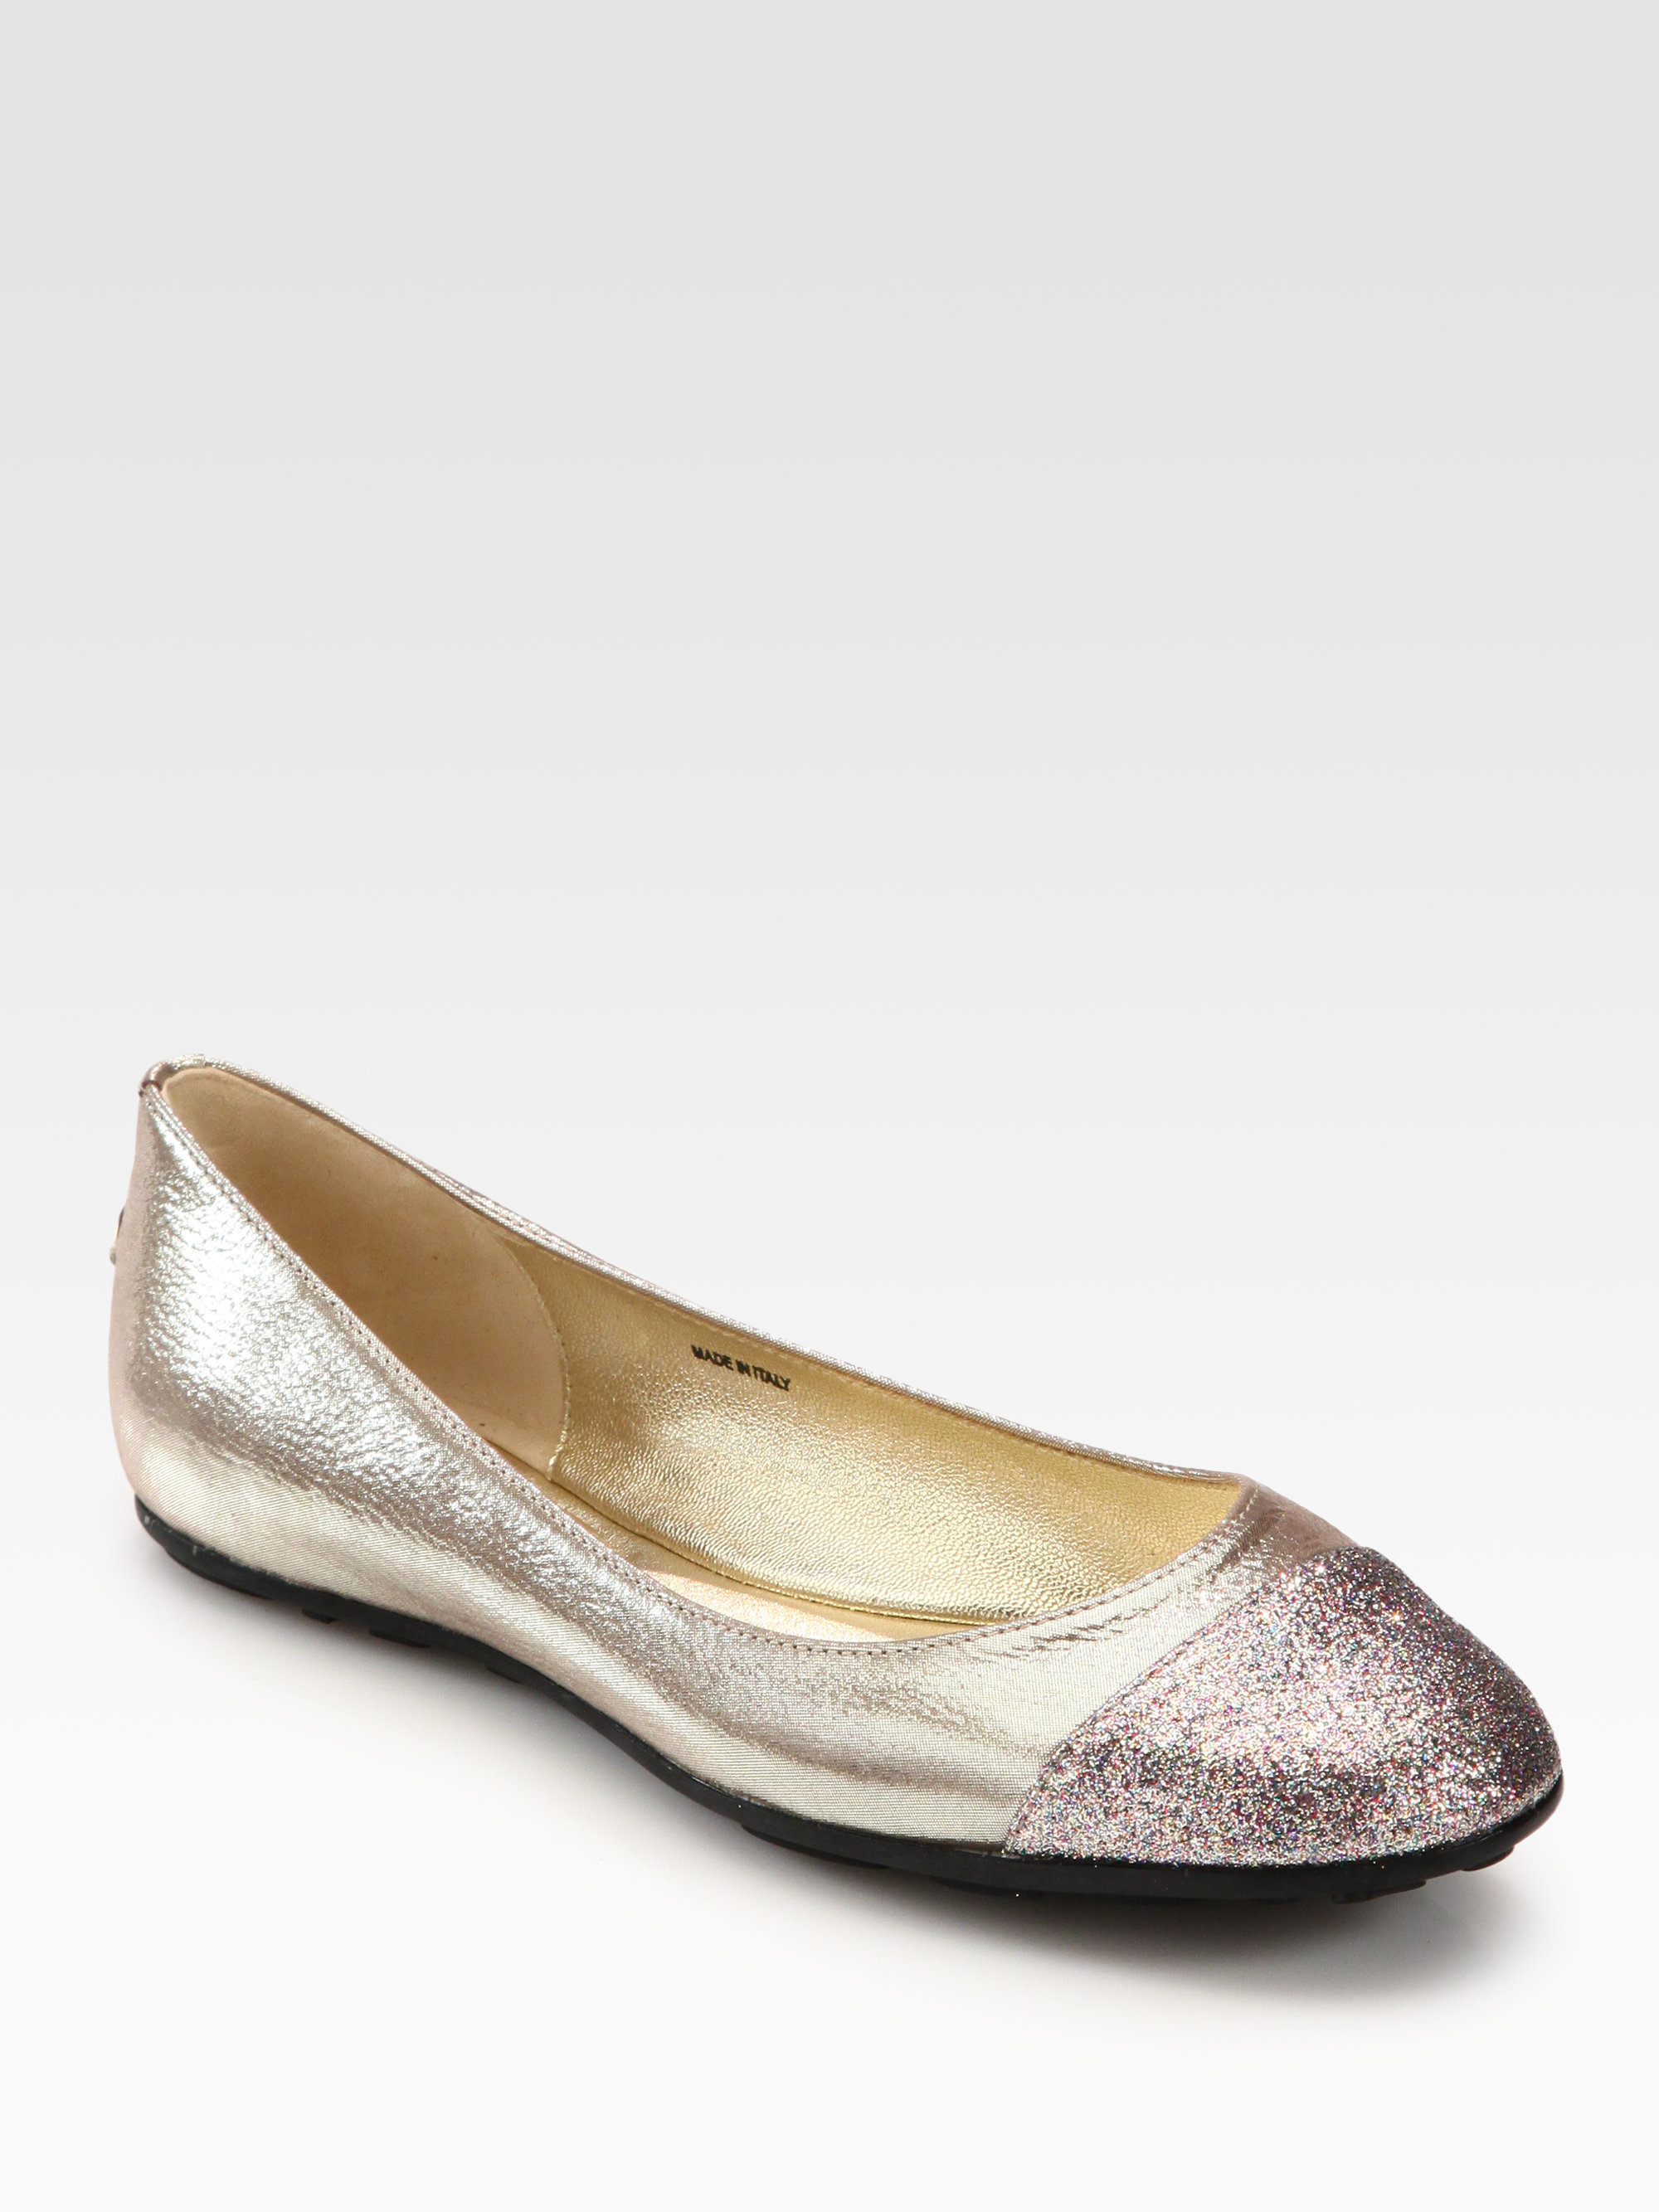 d0298def15 Gallery. Previously sold at: Saks Fifth Avenue · Women's Jimmy Choo Glitter